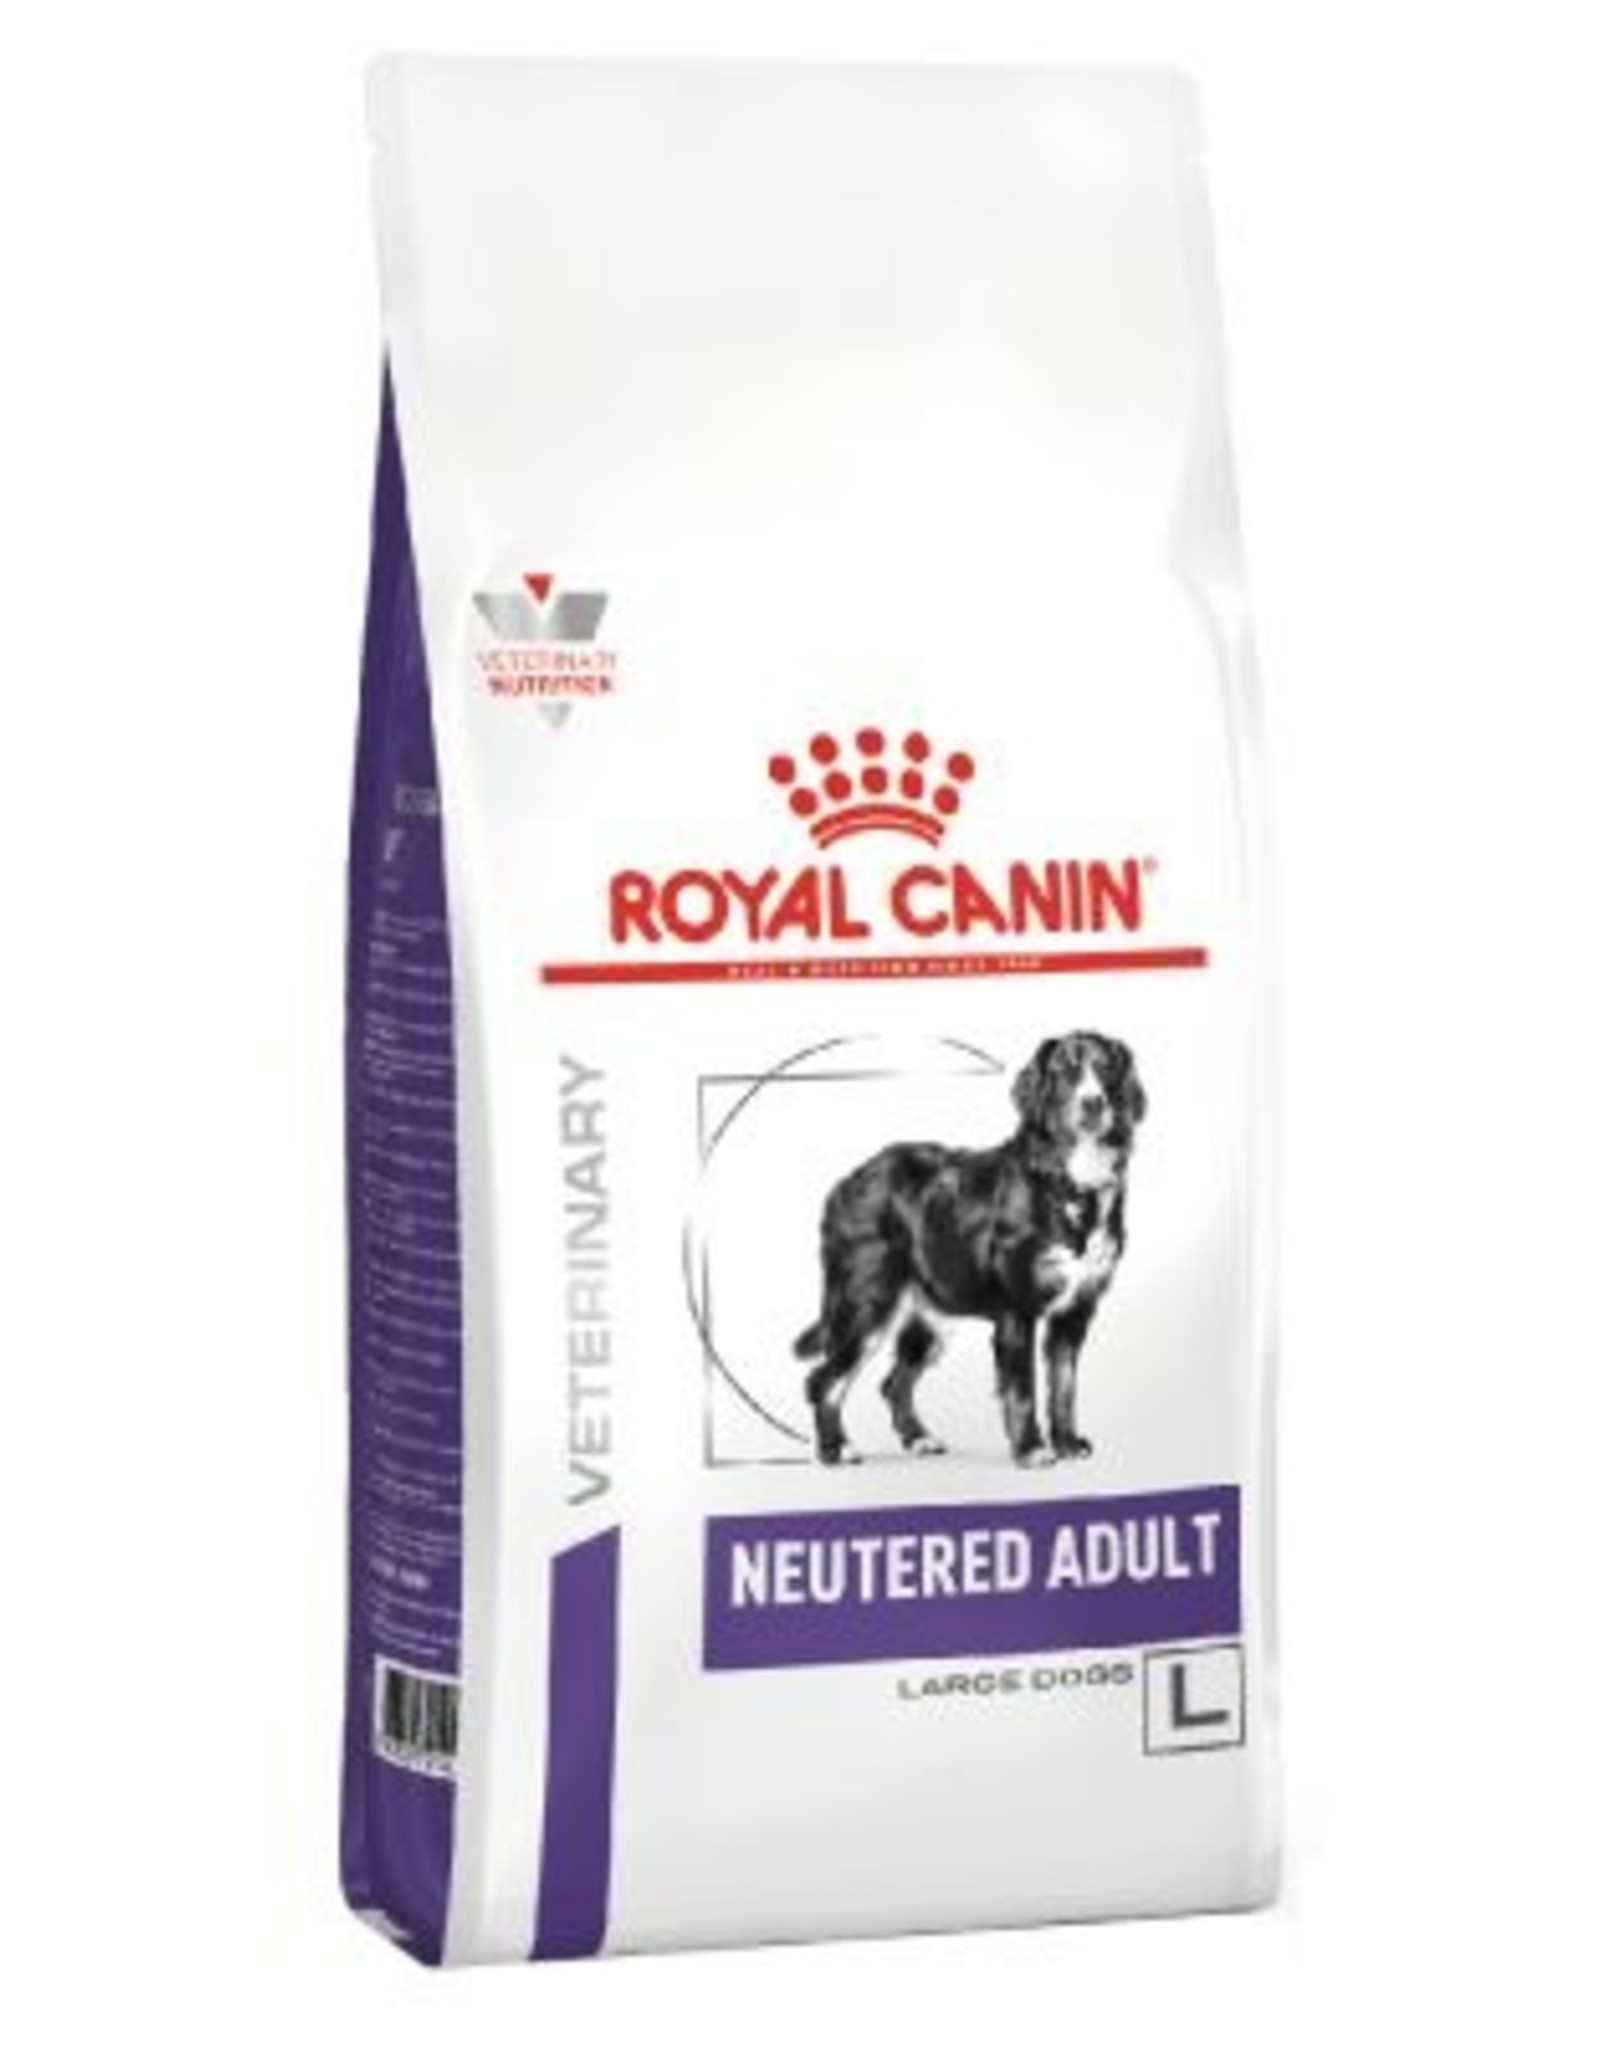 Royal Canin Royal Canin Adult Neutered Large Dog Weight Osteo Hond 3,5kg